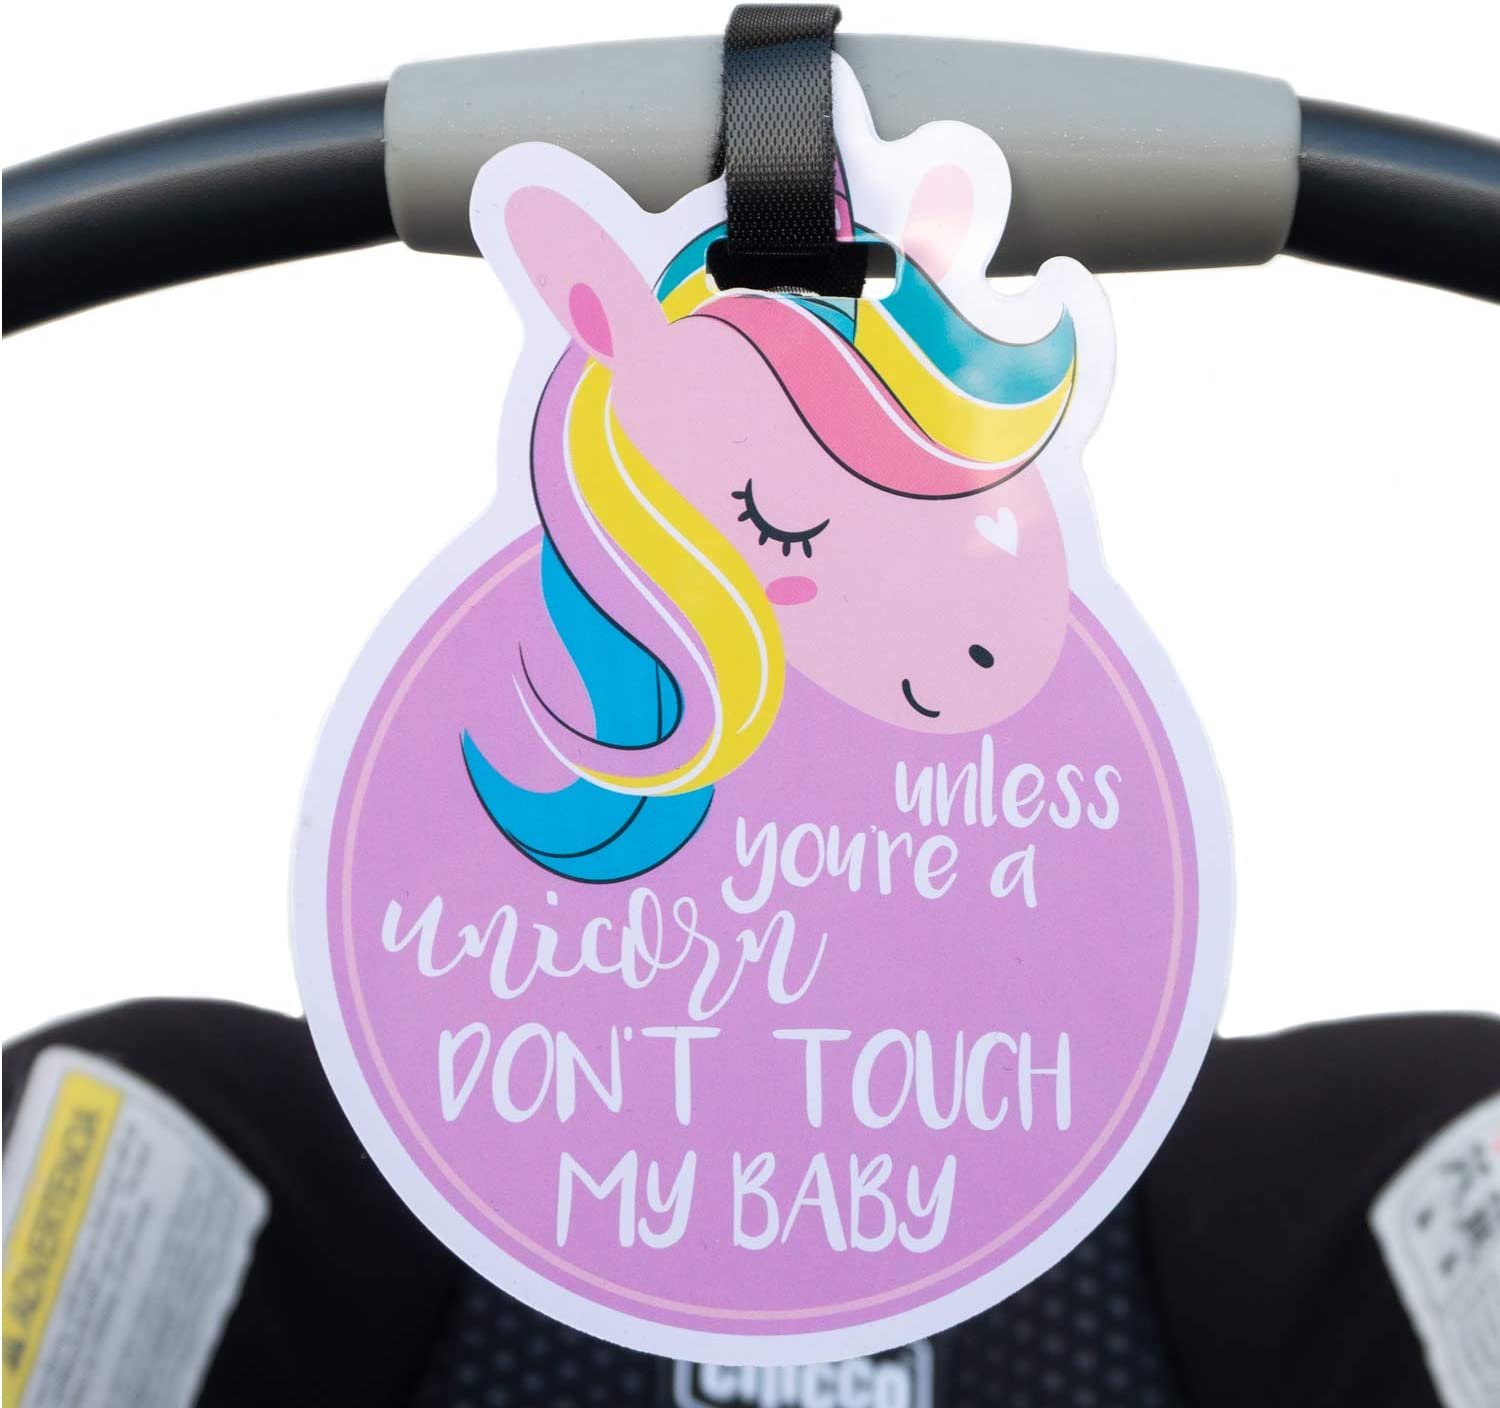 Unicorn Animal Theme No Touching Baby Car Seat Sign or Stroller Tag CPSIA Safety Tested THREE LITTLE TOTS